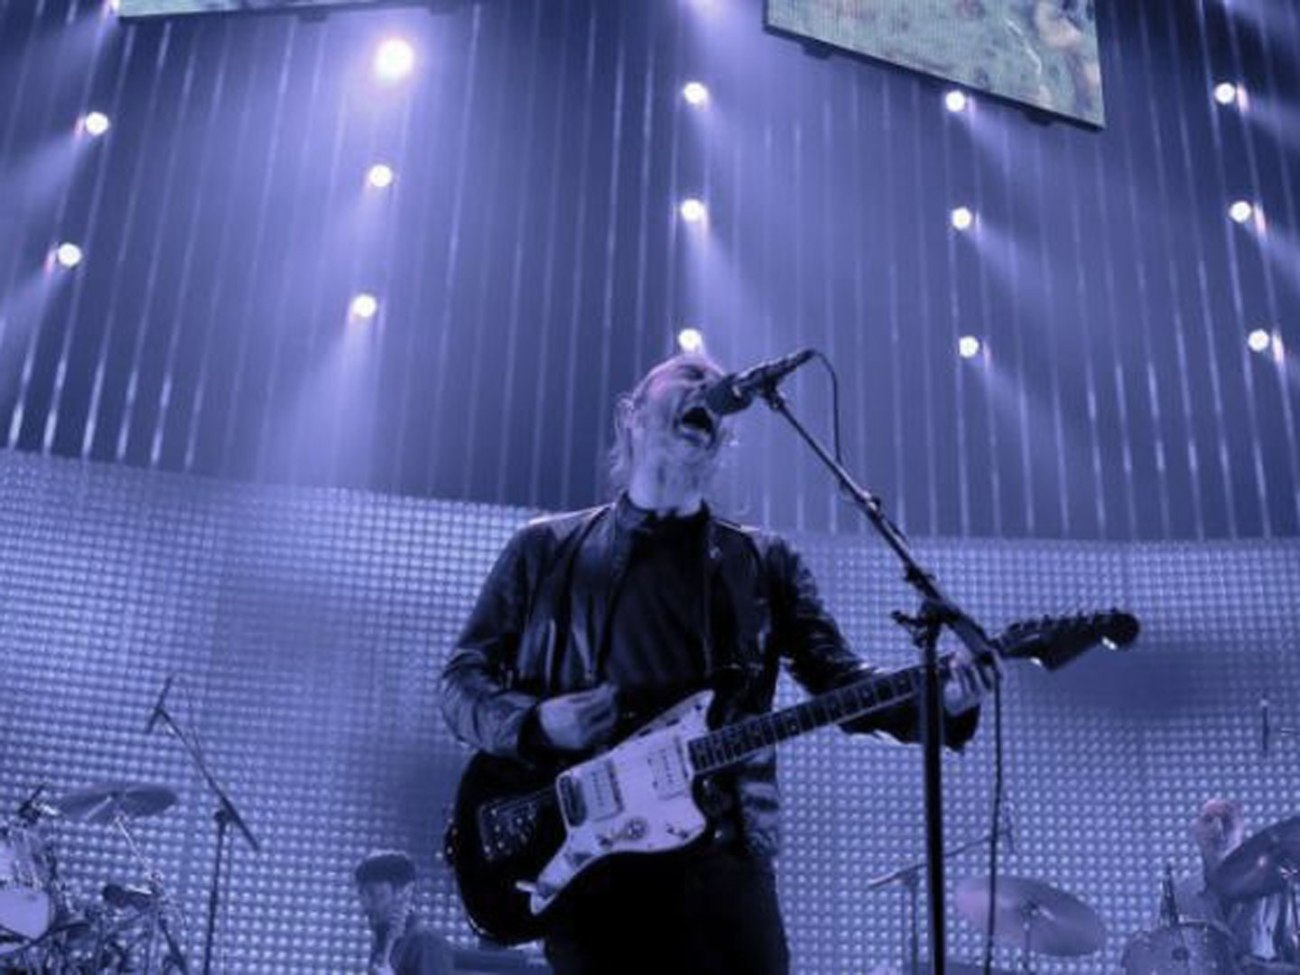 Thom Yorke of Radiohead performing live in Manchester Arena